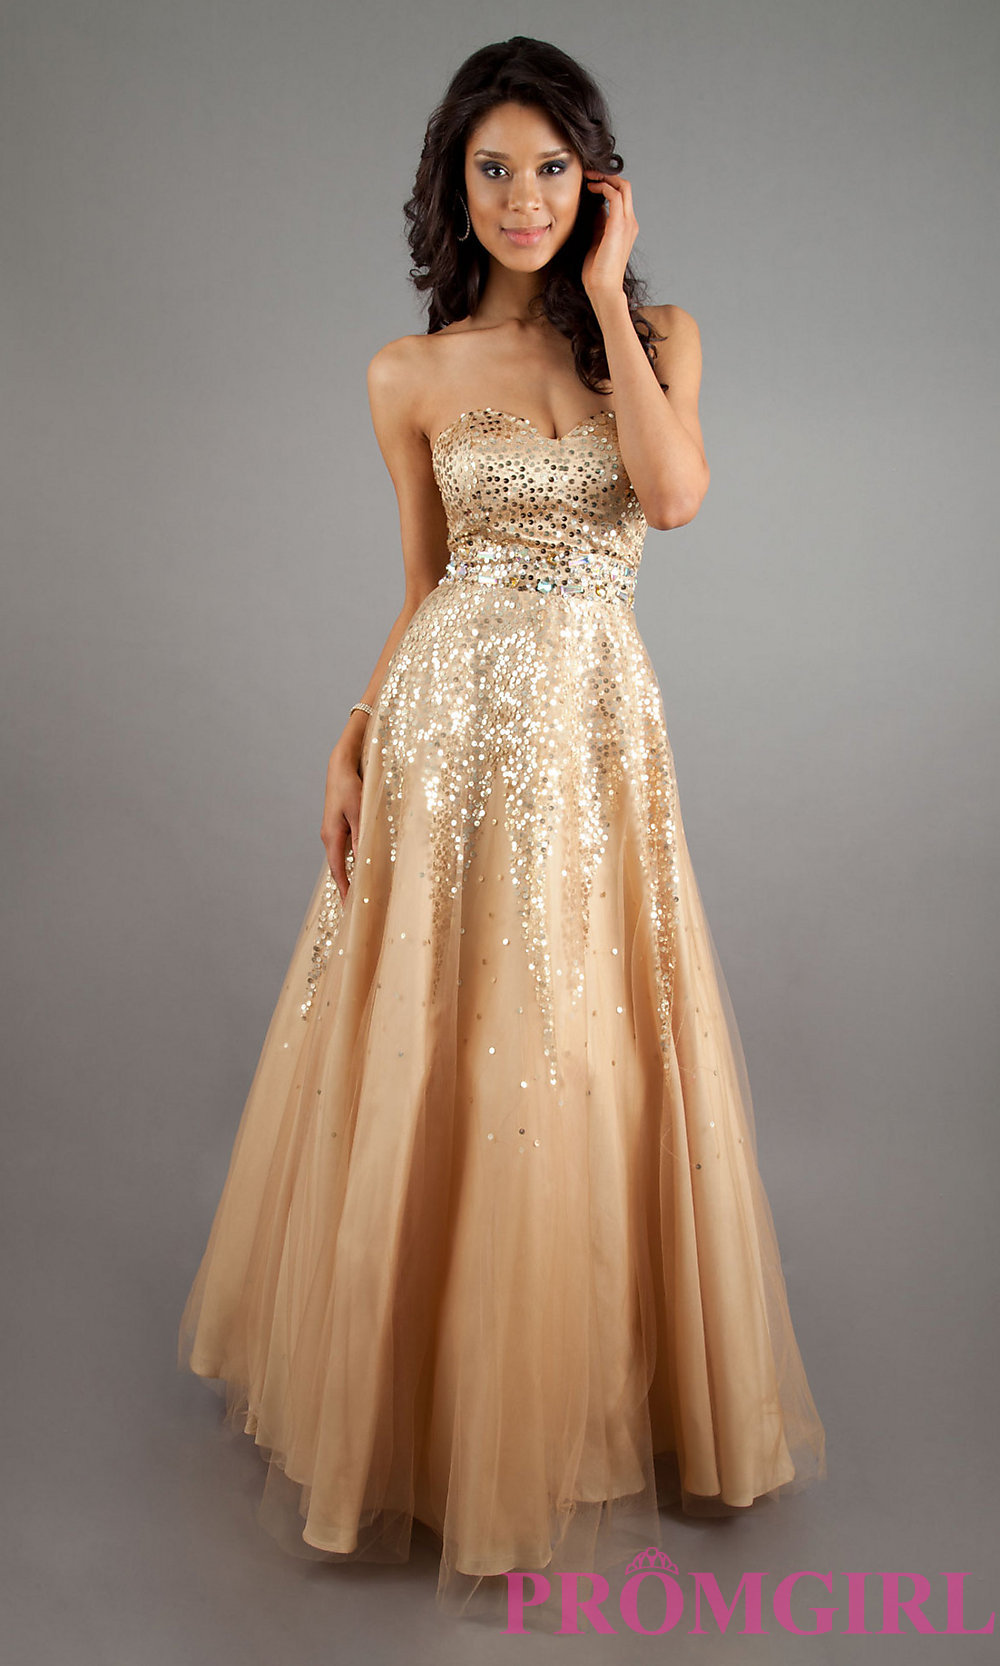 Black And Gold Ball Dress – Beautiful And Elegant – Always ...